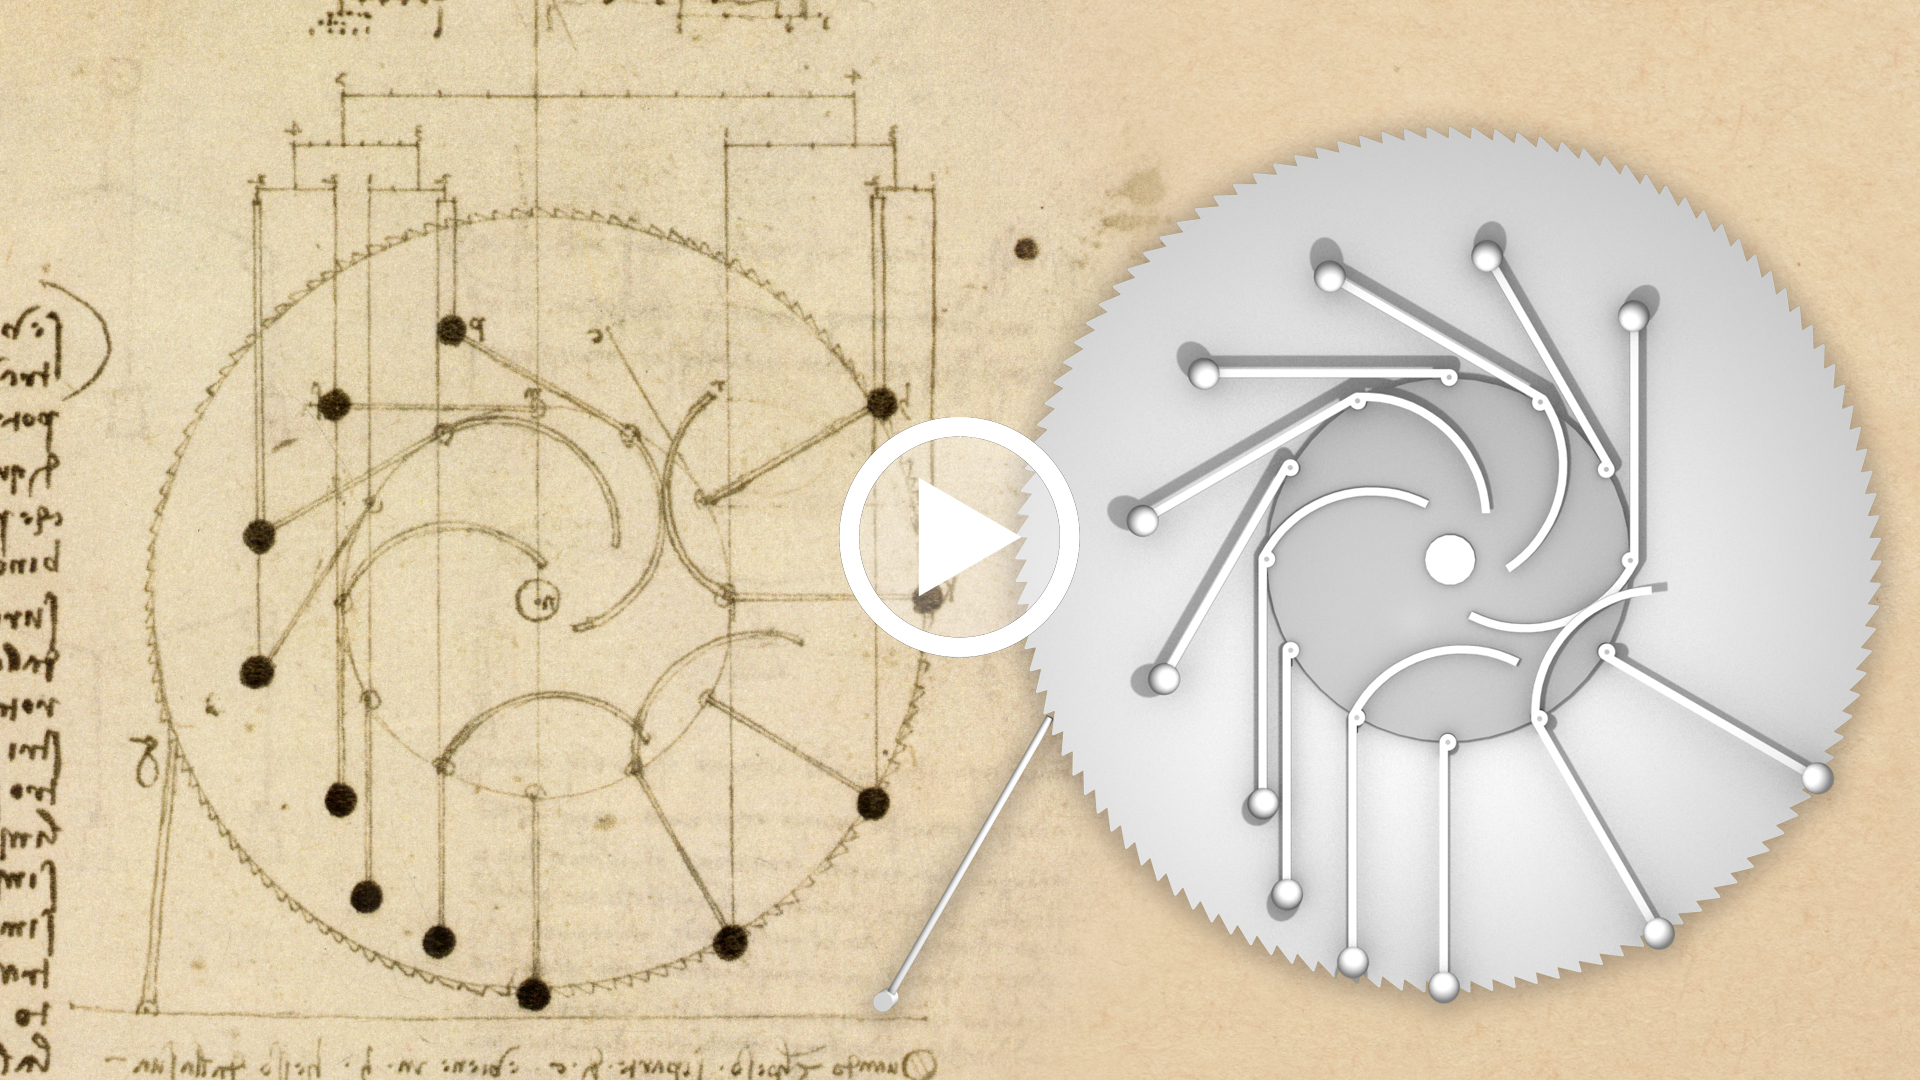 video Leonardo da Vinci, Studies for the design of a perpetual wheel with articulated arms, MAD I 147v